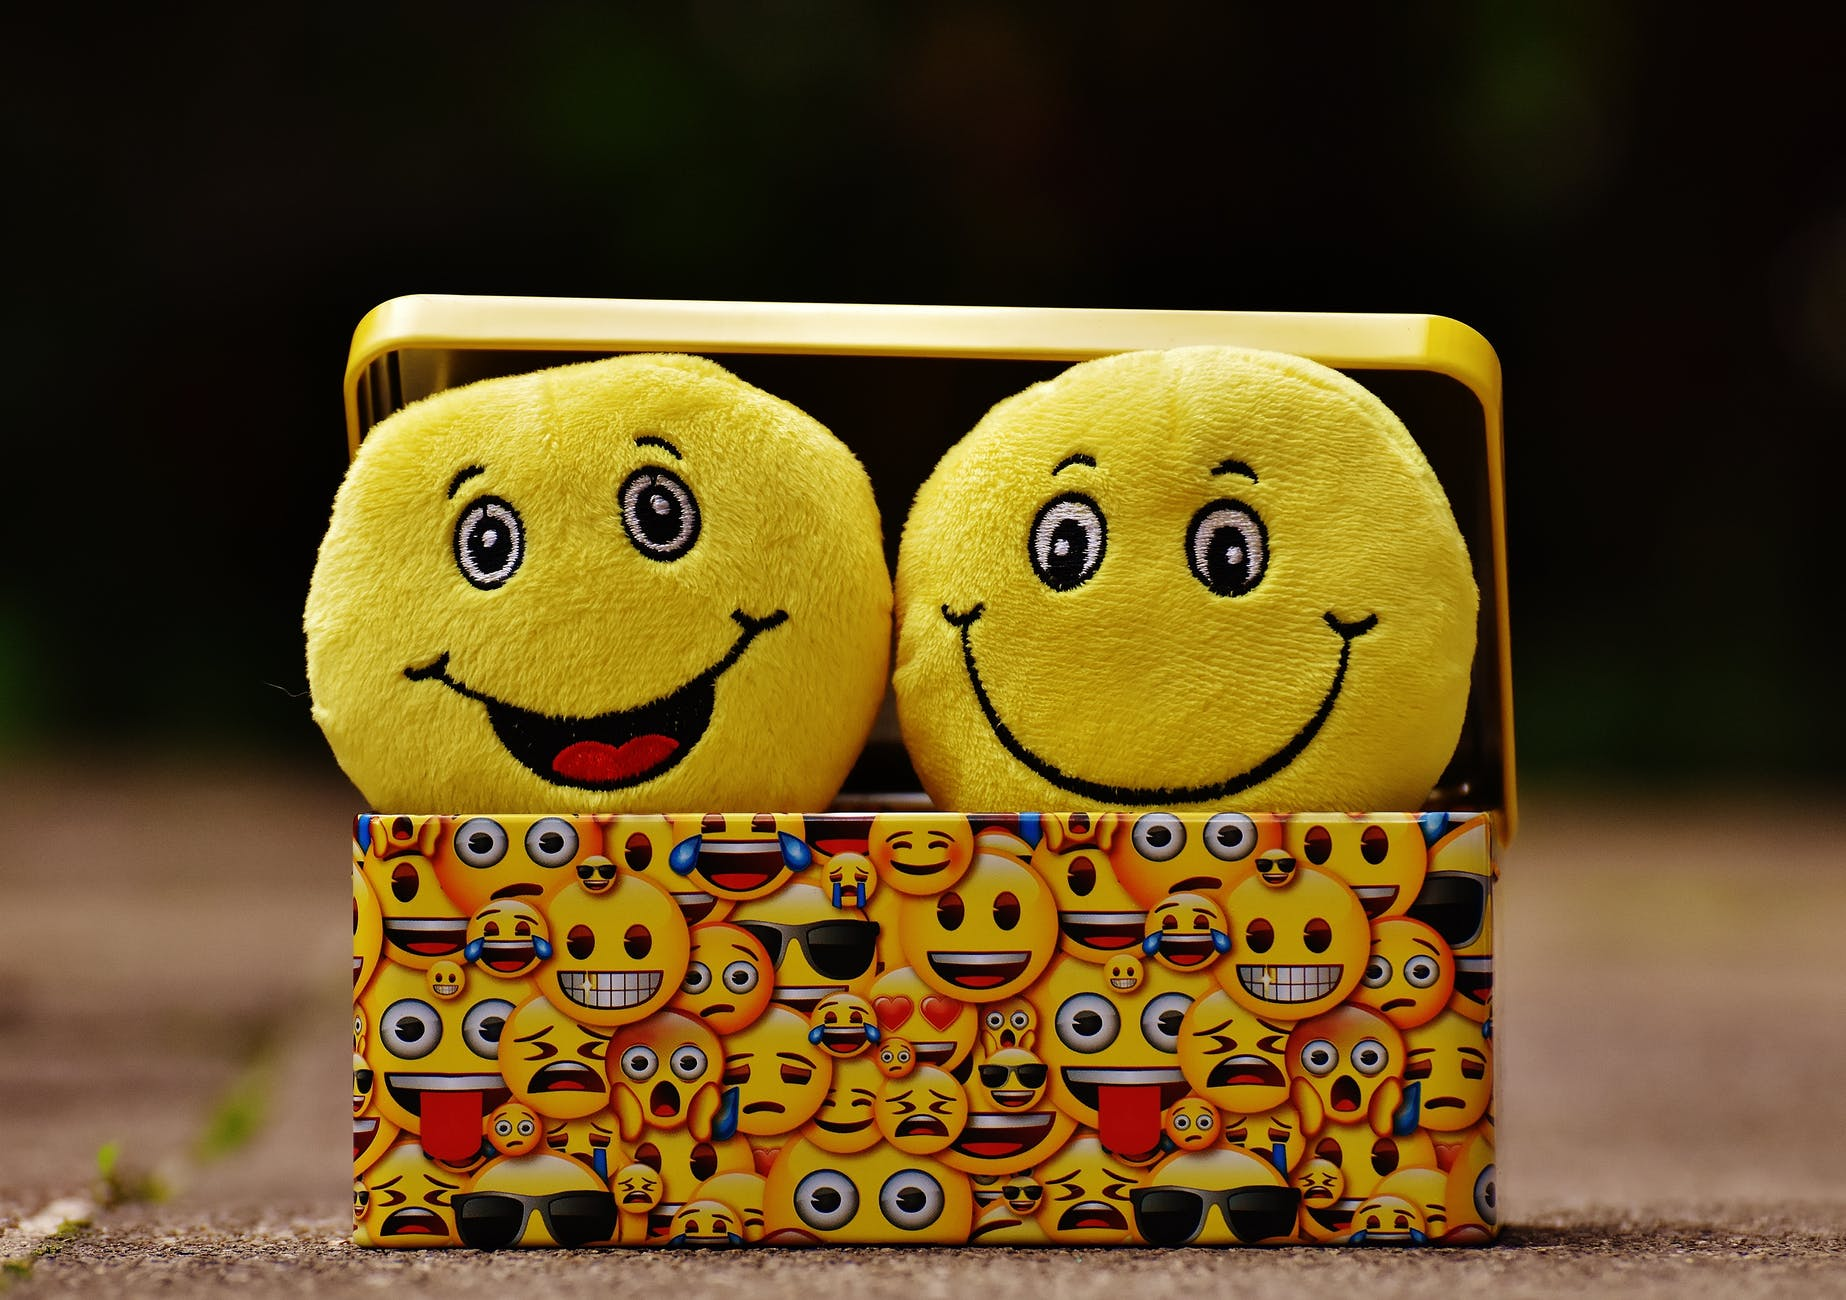 Happy and Smiling emoji plush dolls in a metal tin case with various emojis decorating it. Representative of many emotions.